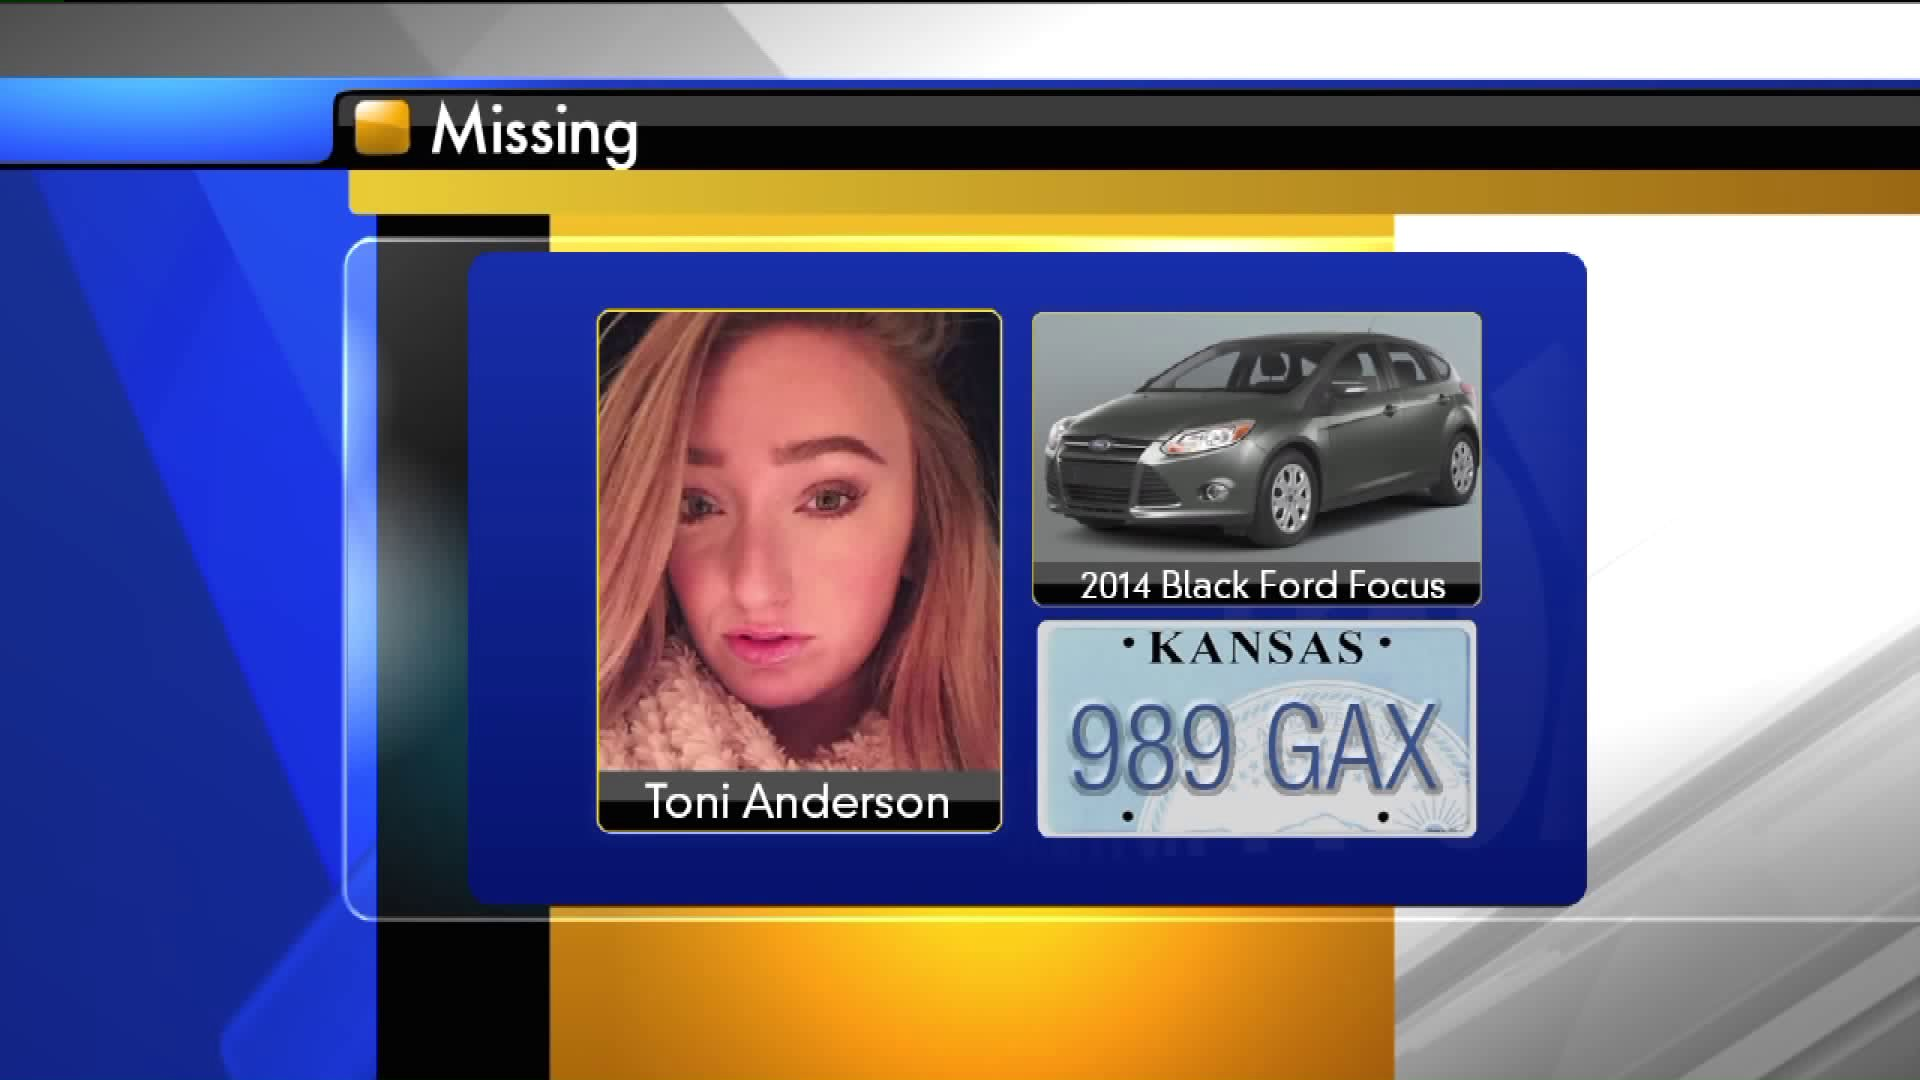 Toni Anderson has been missing since Sunday, Jan. 15.